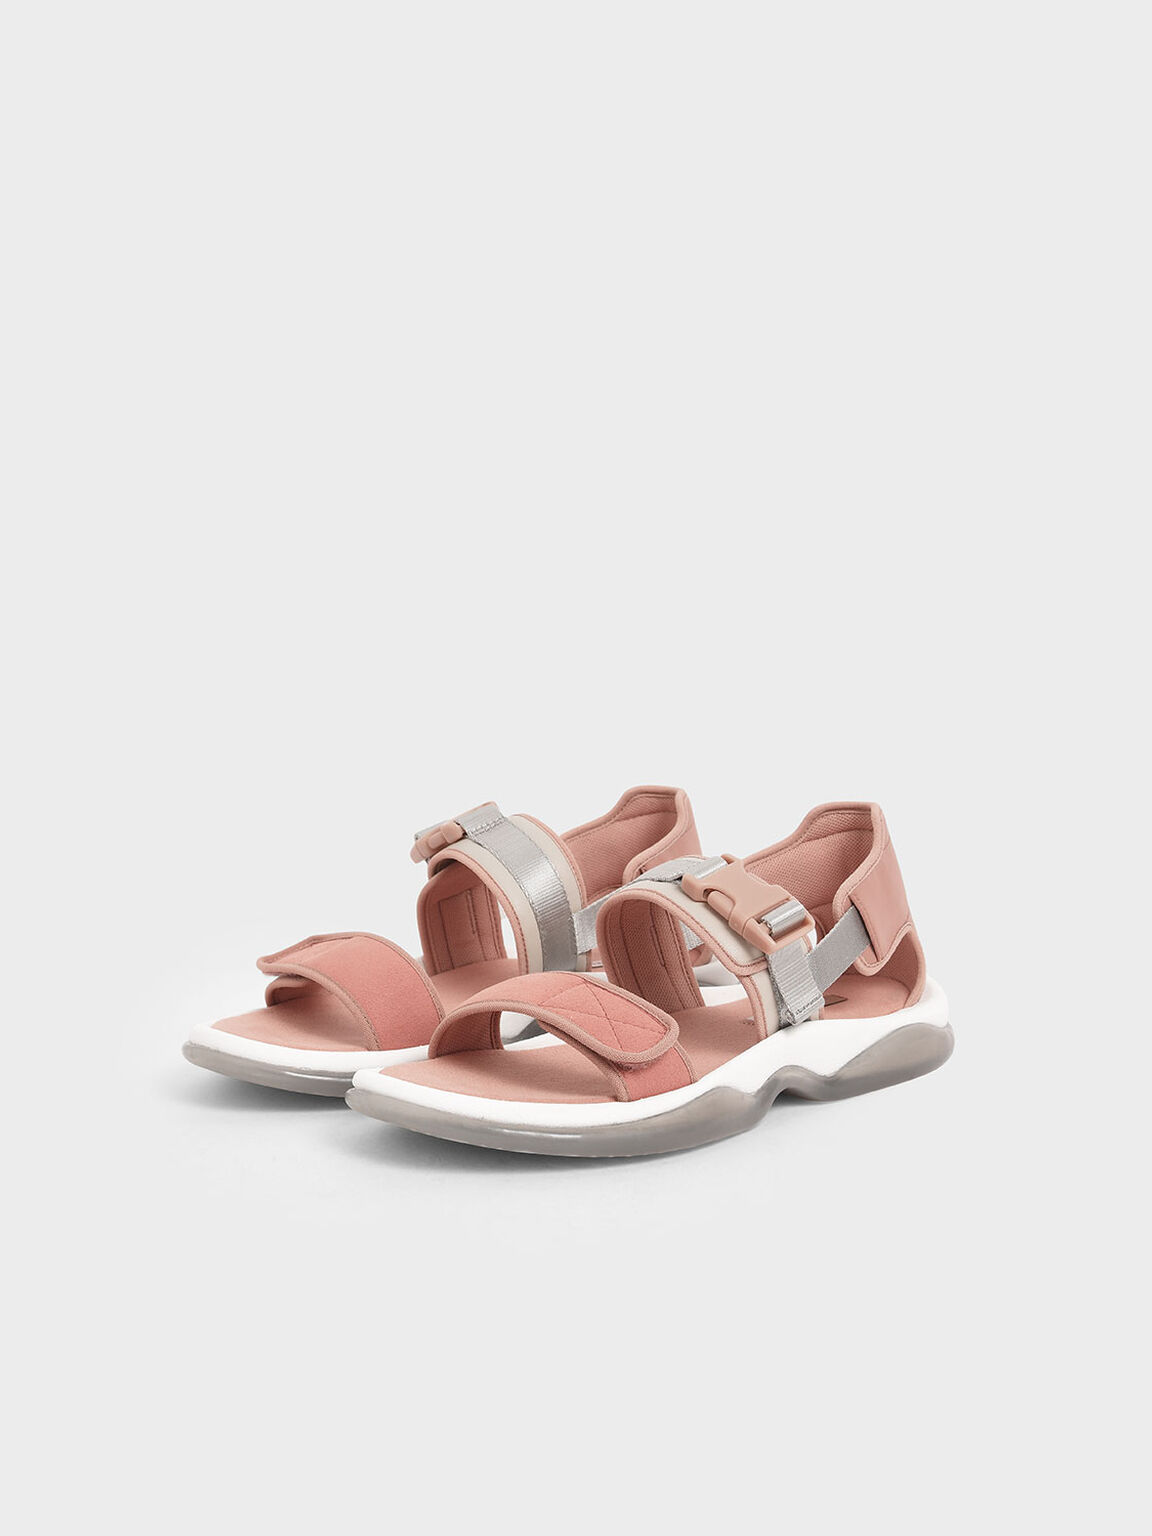 Strappy Chunky Sandals, Nude, hi-res